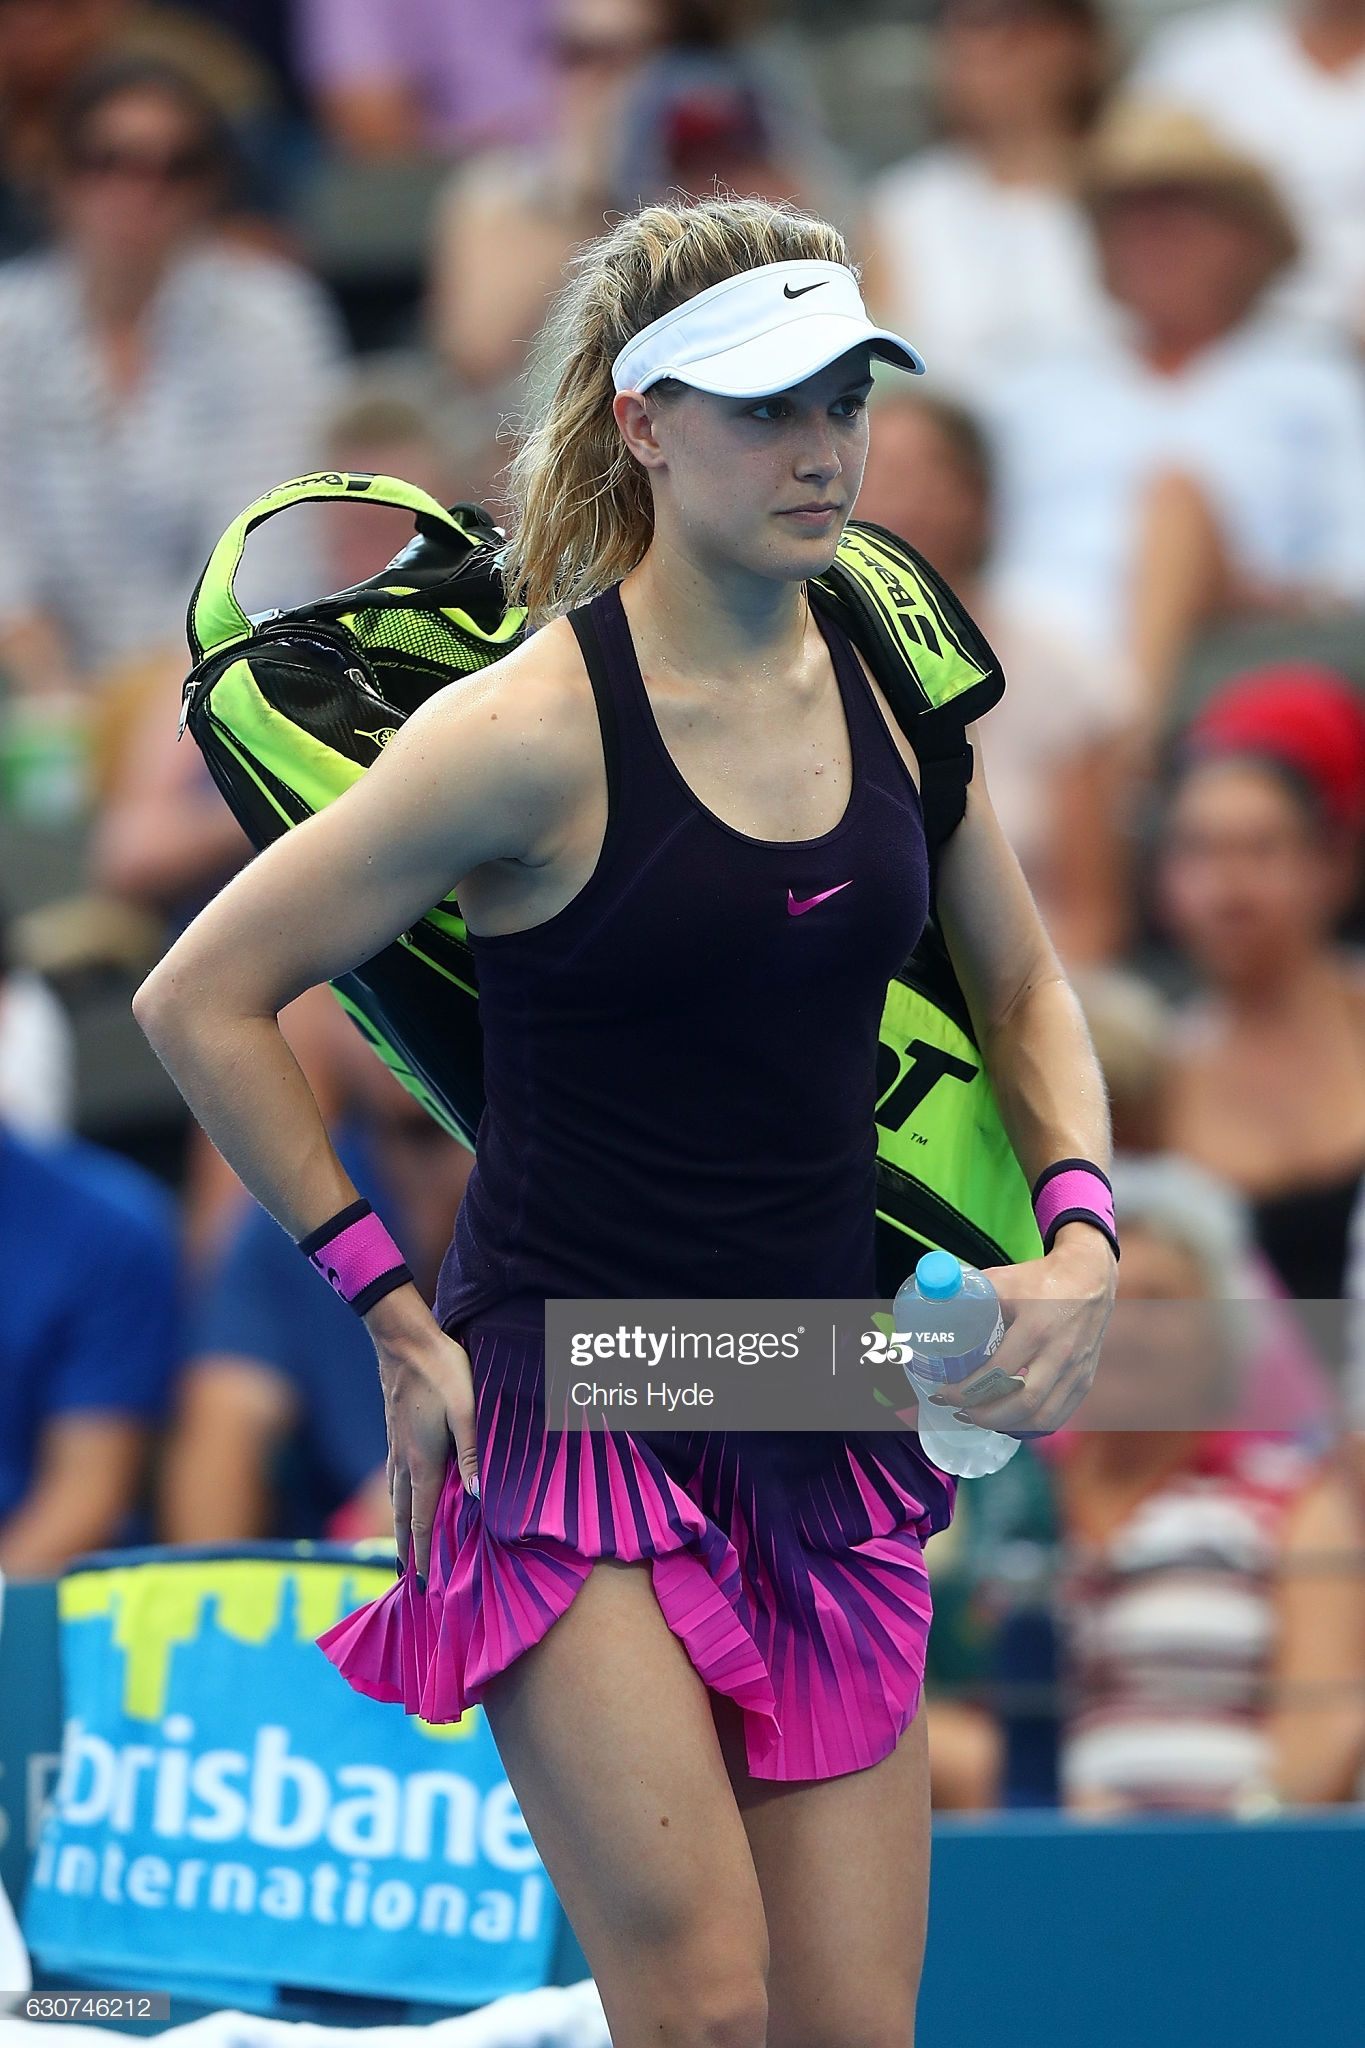 Pin By Rider 90 On Girls In Action In 2020 Tennis Players Female Eugenie Bouchard Sports Women